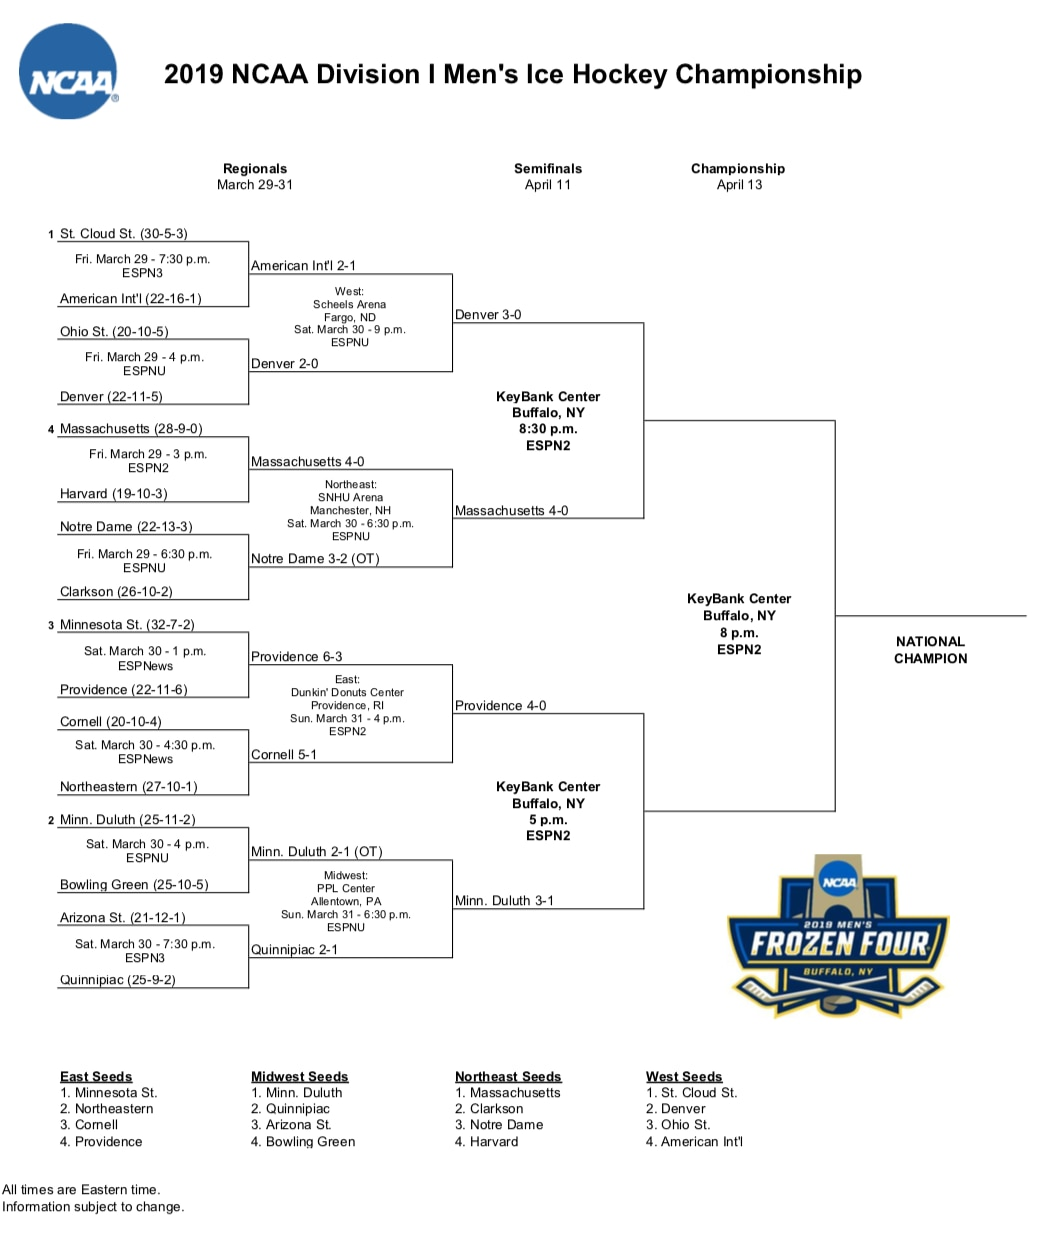 picture relating to Thunder Schedule Printable known as Frozen 4 bracket: Printable 2019 NCAA hockey match